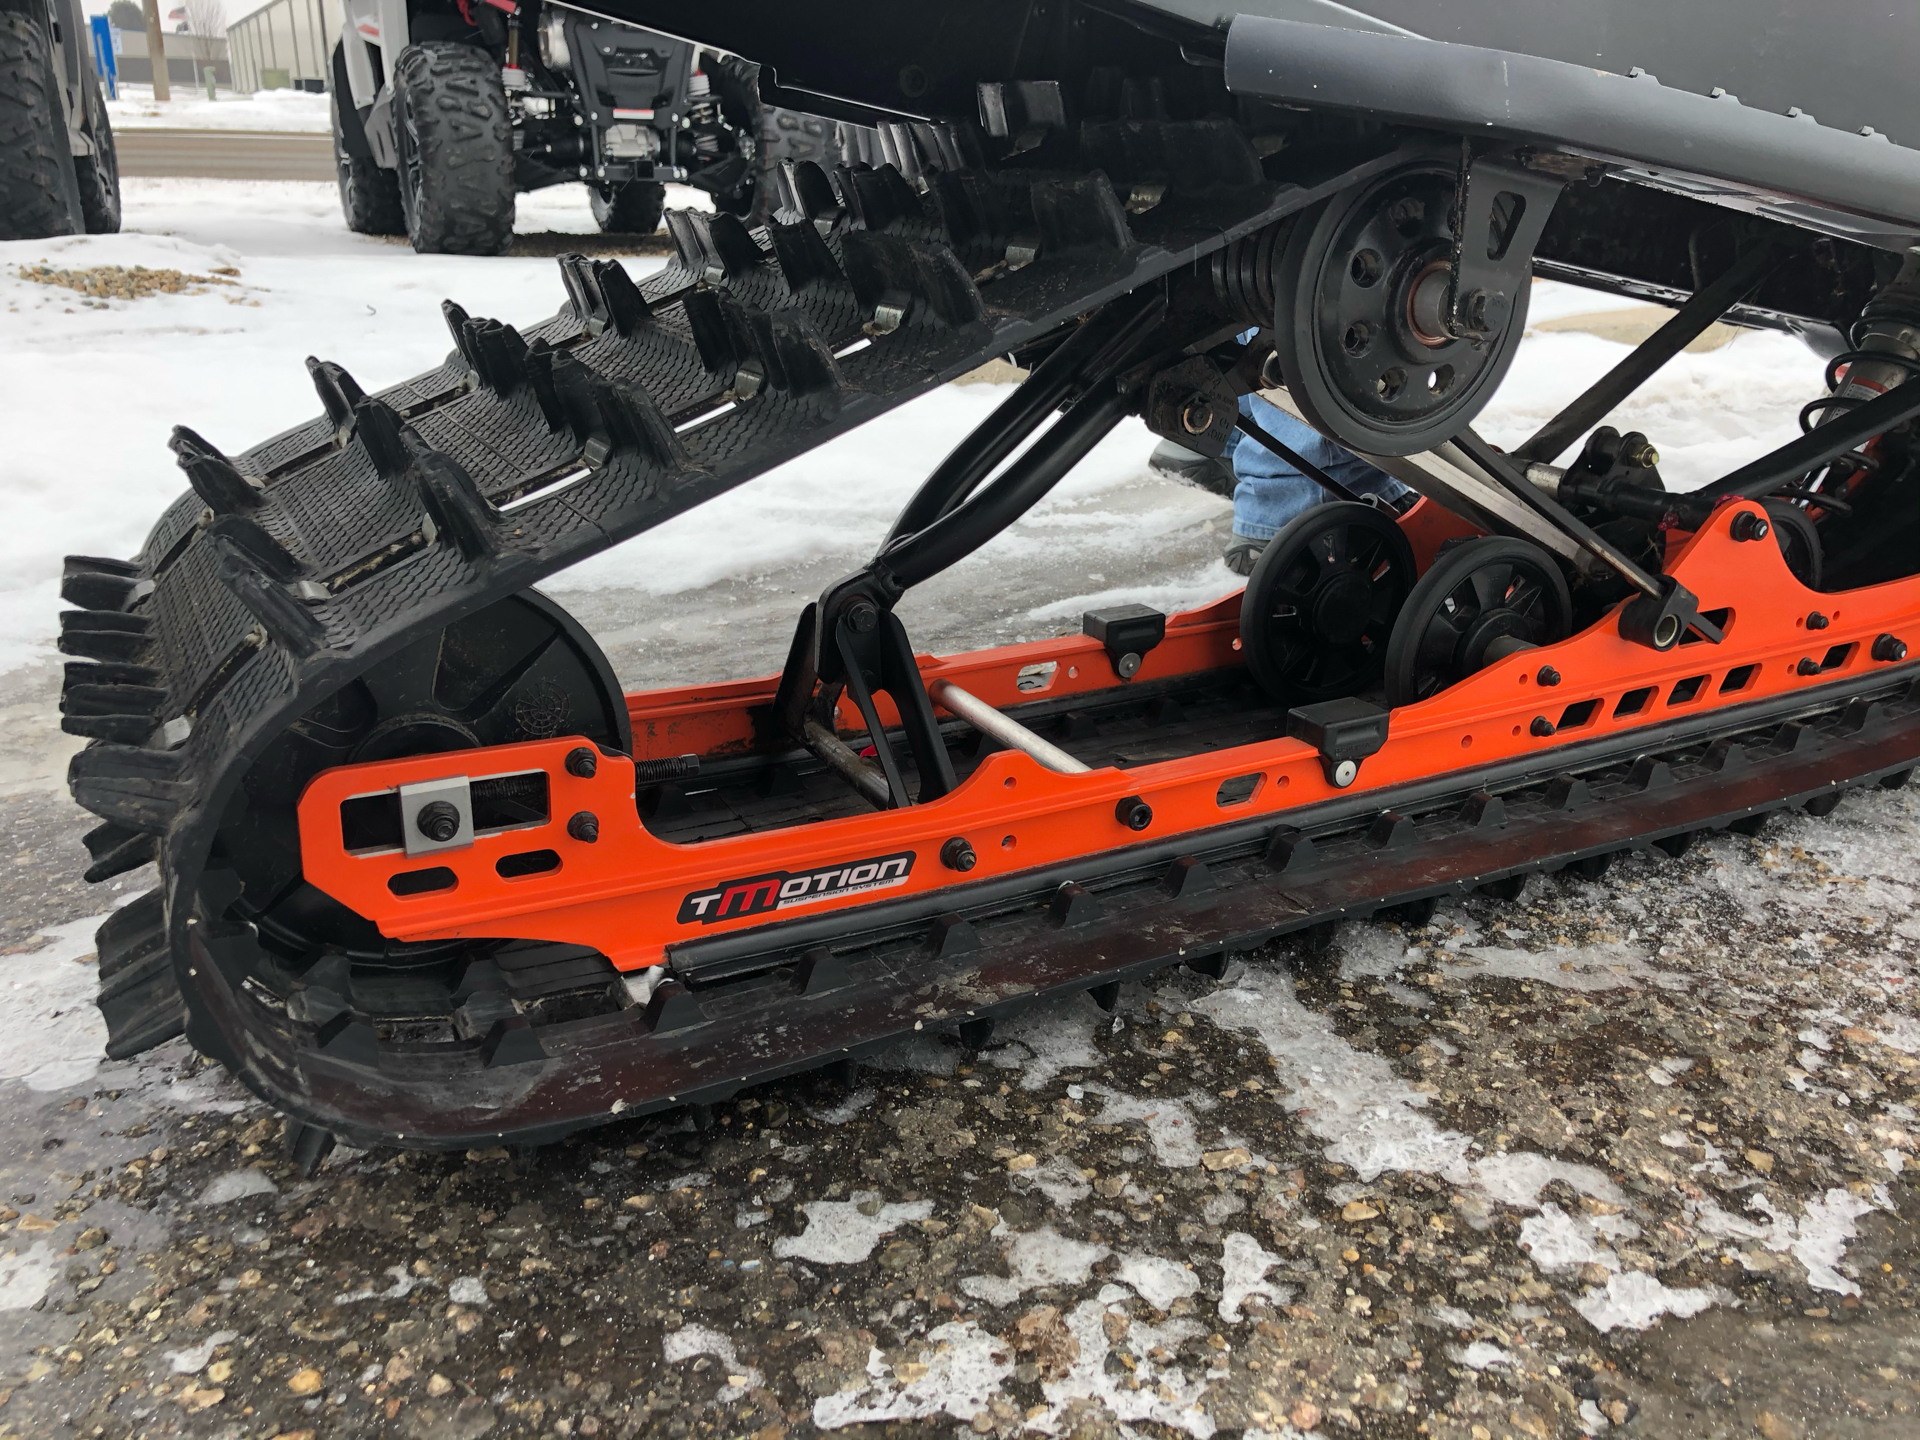 2016 Ski-Doo Renegade Backcountry 800R E-TEC in Bismarck, North Dakota - Photo 6